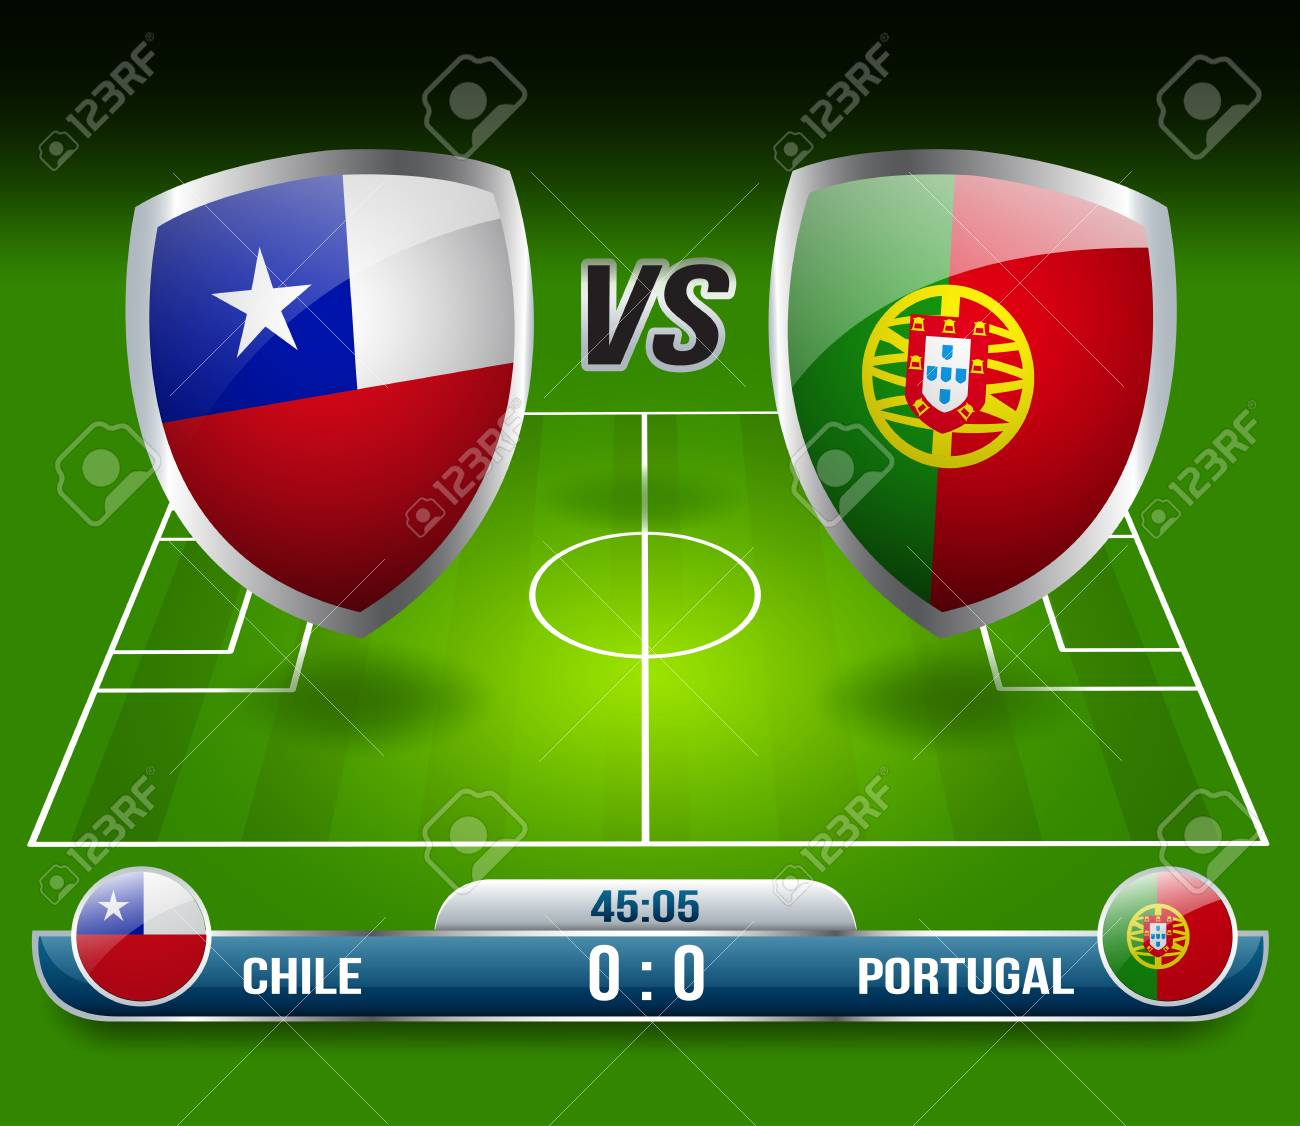 Chile Vs Portugal Soccer Match Vector Illustration Royalty Free